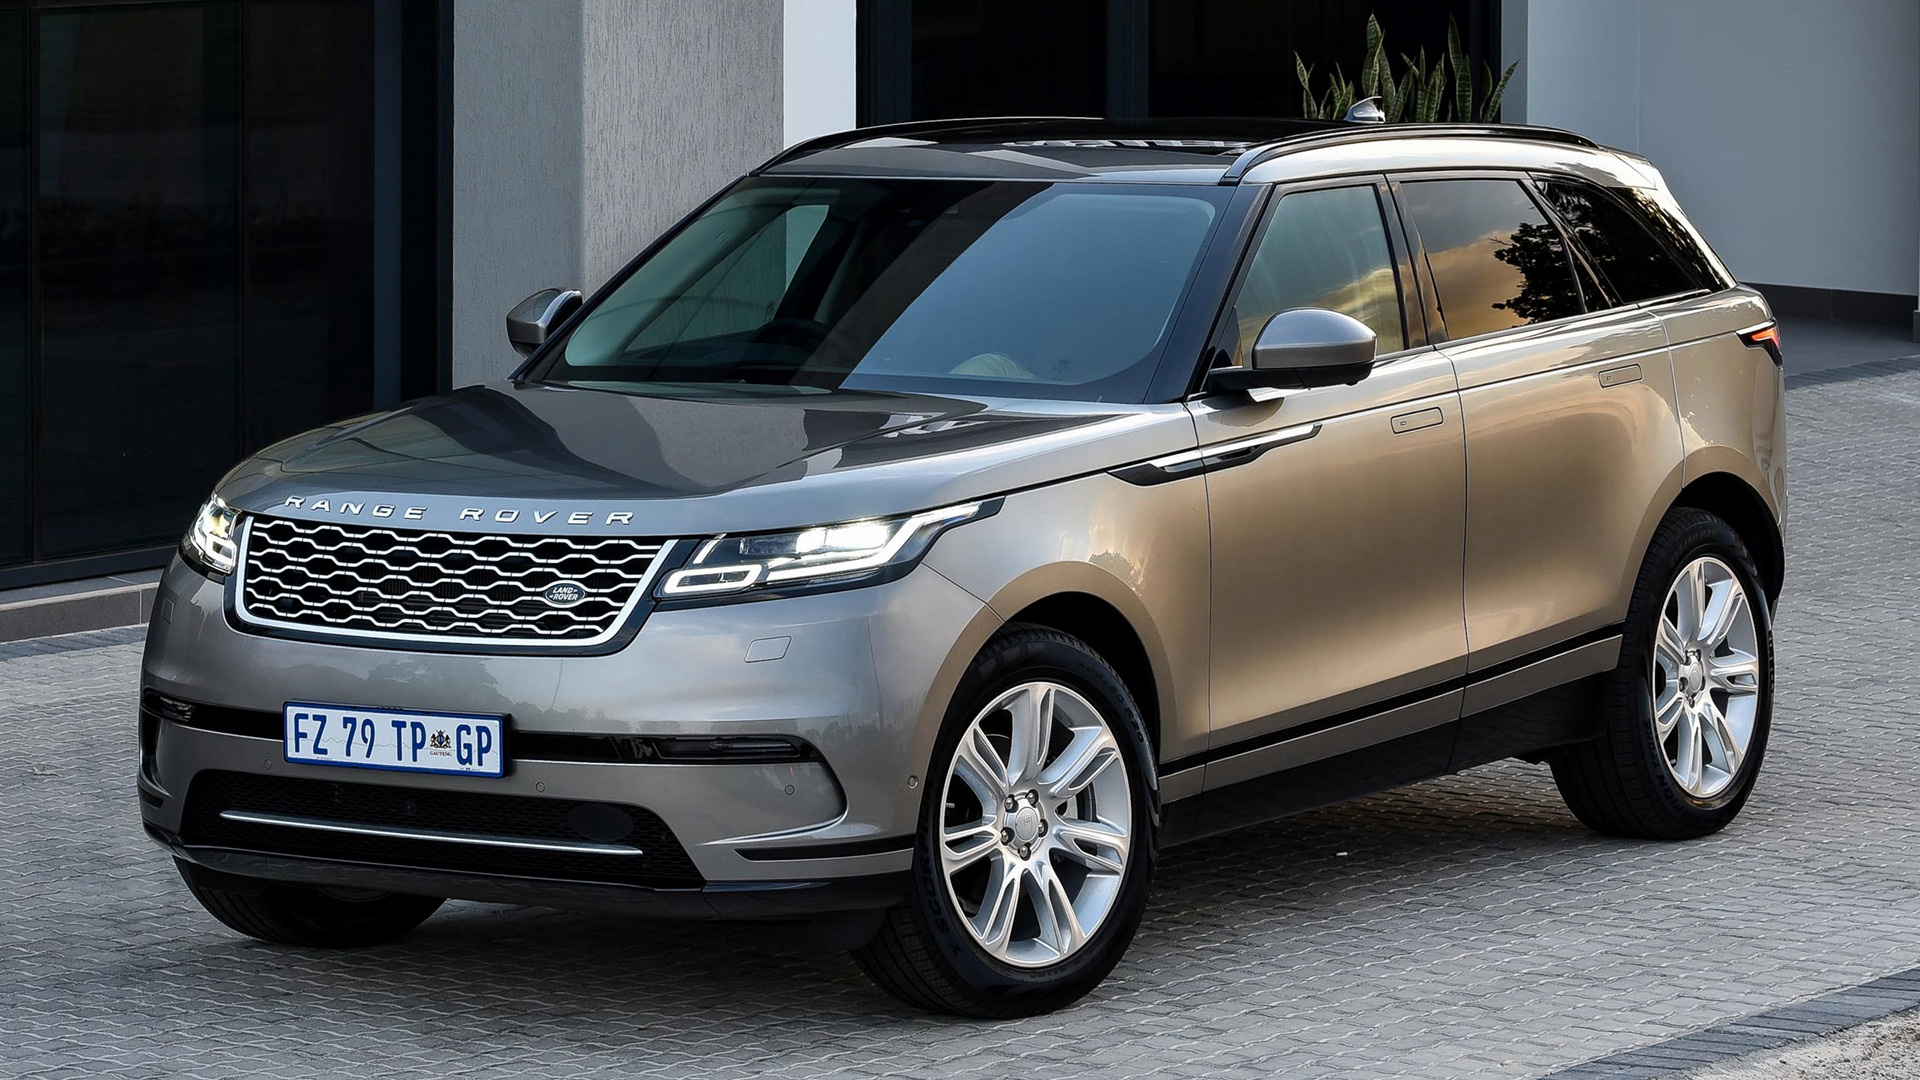 2017 Range Rover Velar Hd Wallpaper Background Image